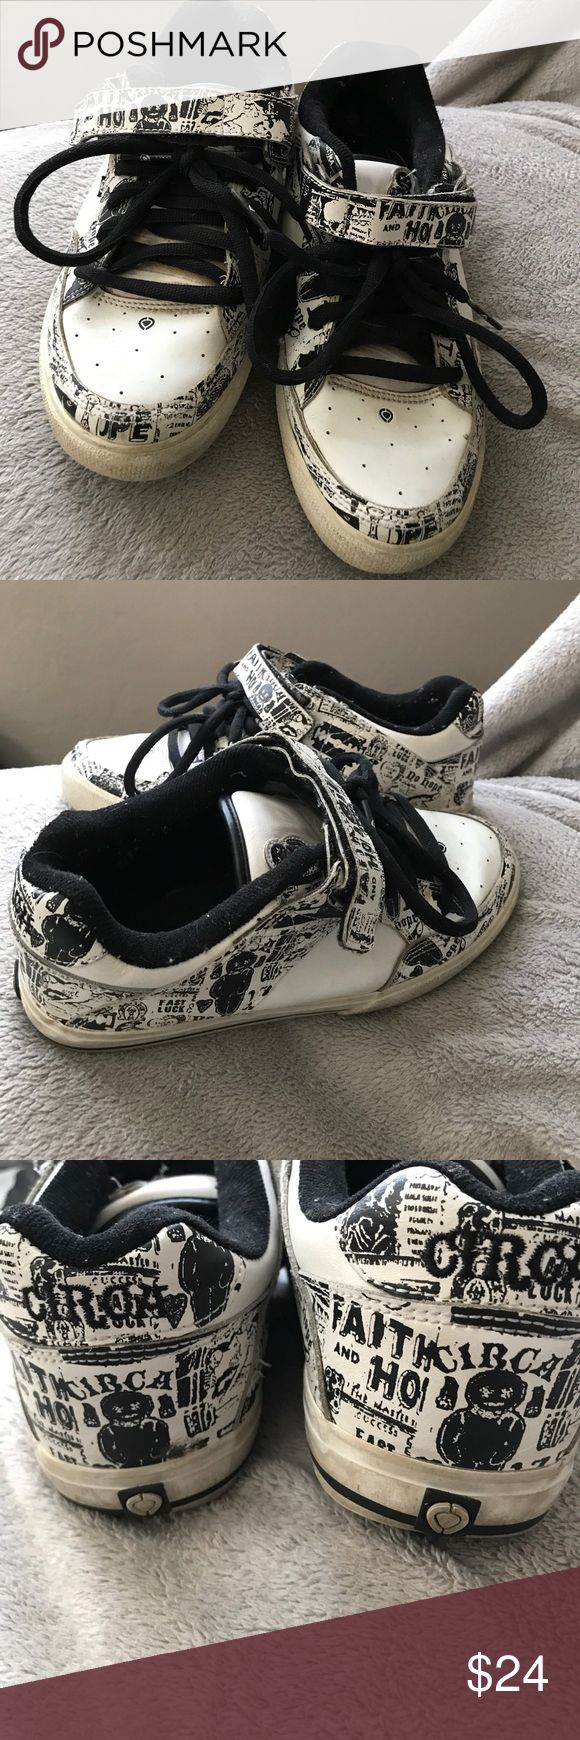 Circa Skate Shoes - Men's 7 Women's 8.5 Circa Skate Shoes - Men's 7 Women's 8.5. These are pretty used but they have been taken care of and still have some skate sessions left in them. Velcro and tie. Black and white. Circa Skate Shoes Athletic Shoes